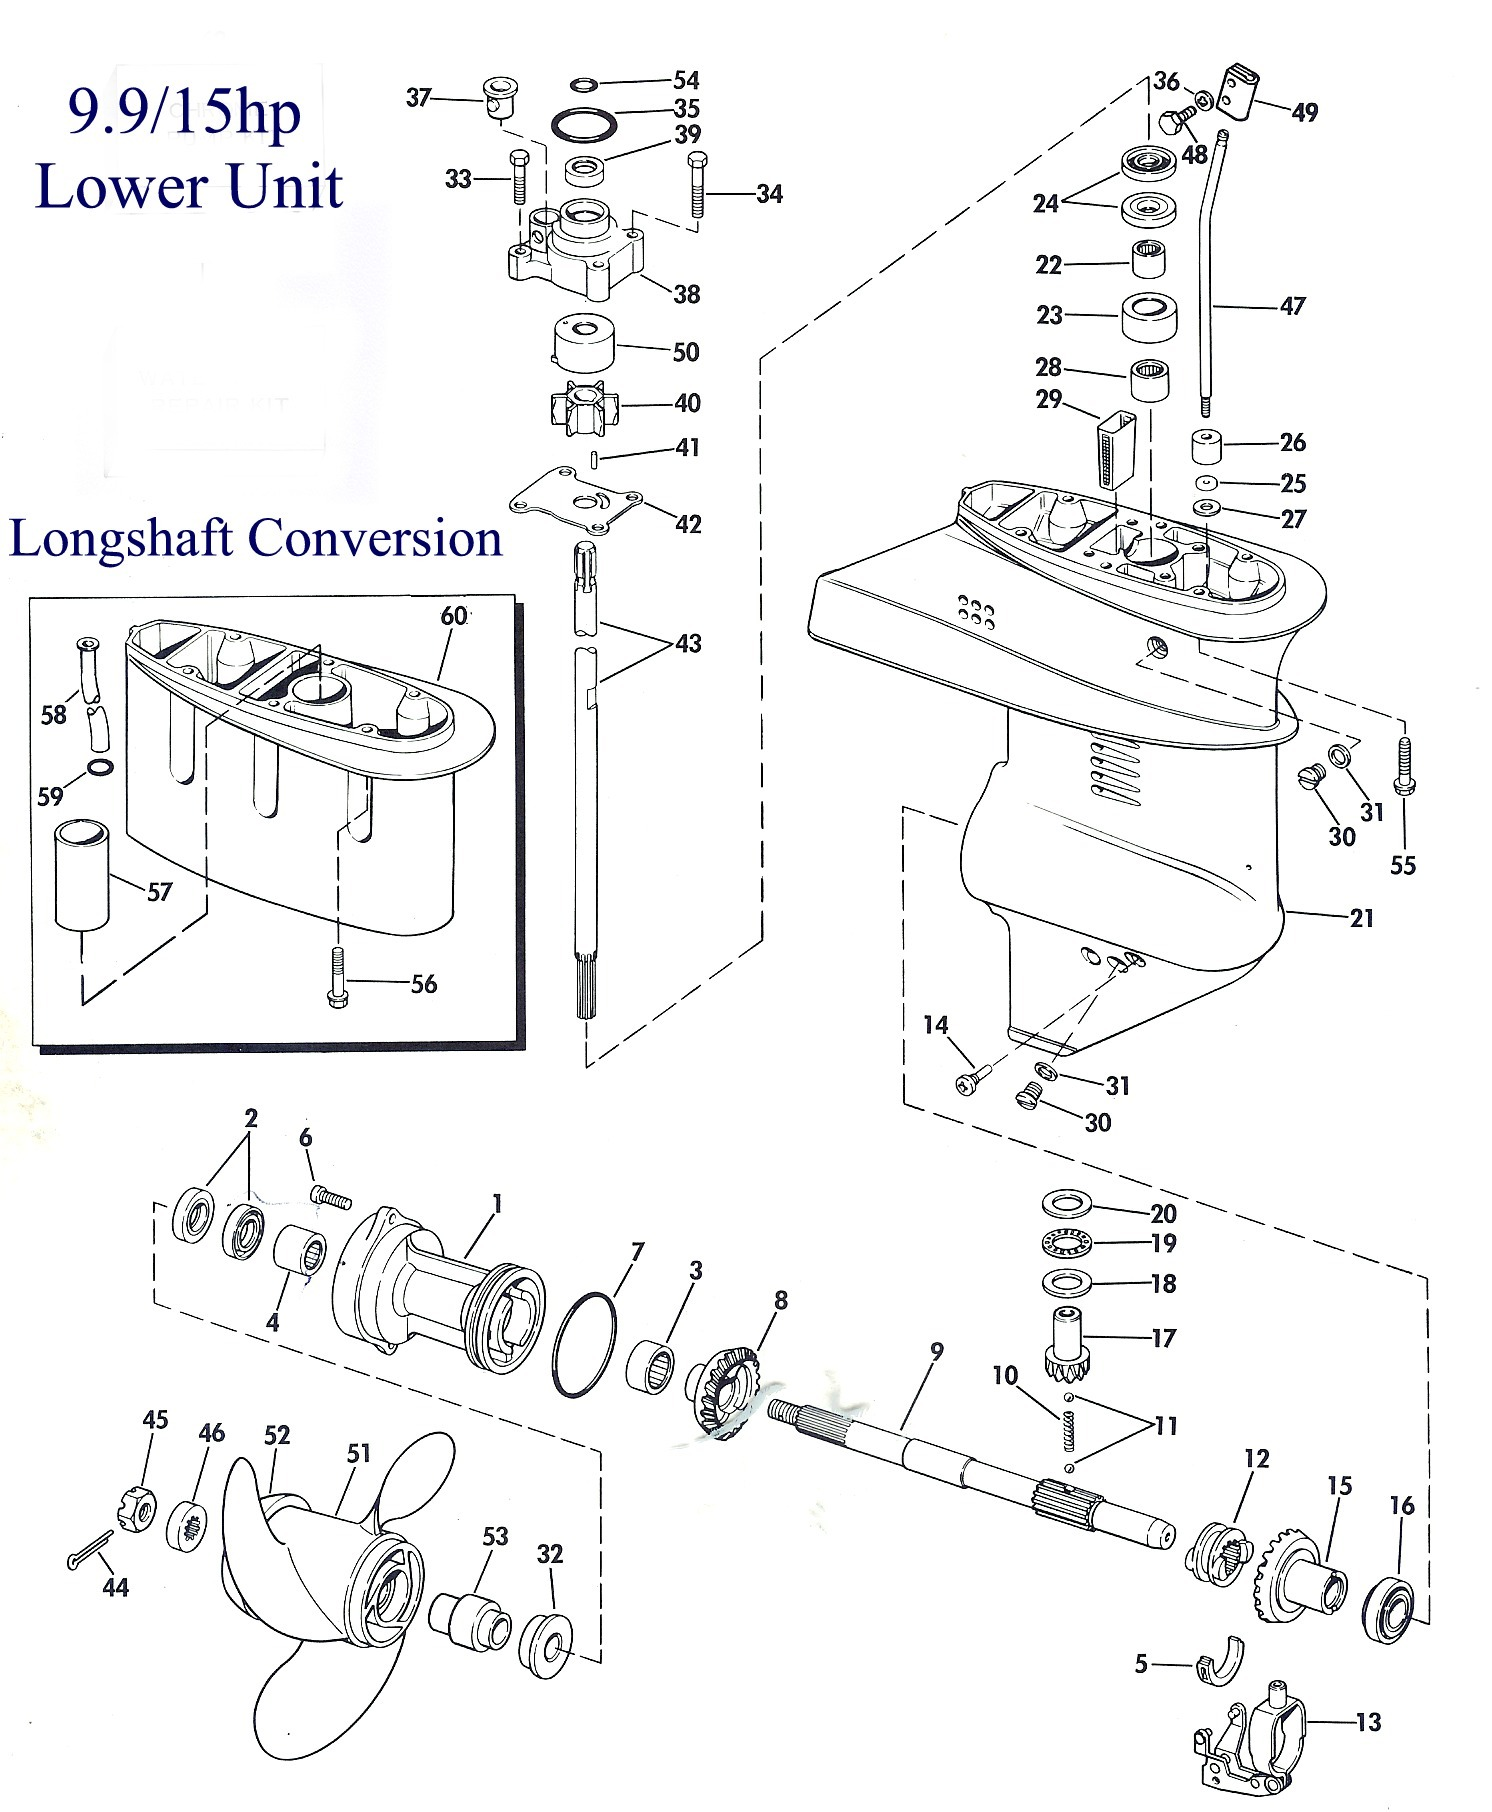 200hp Etec Lower Unit Workshop Manual